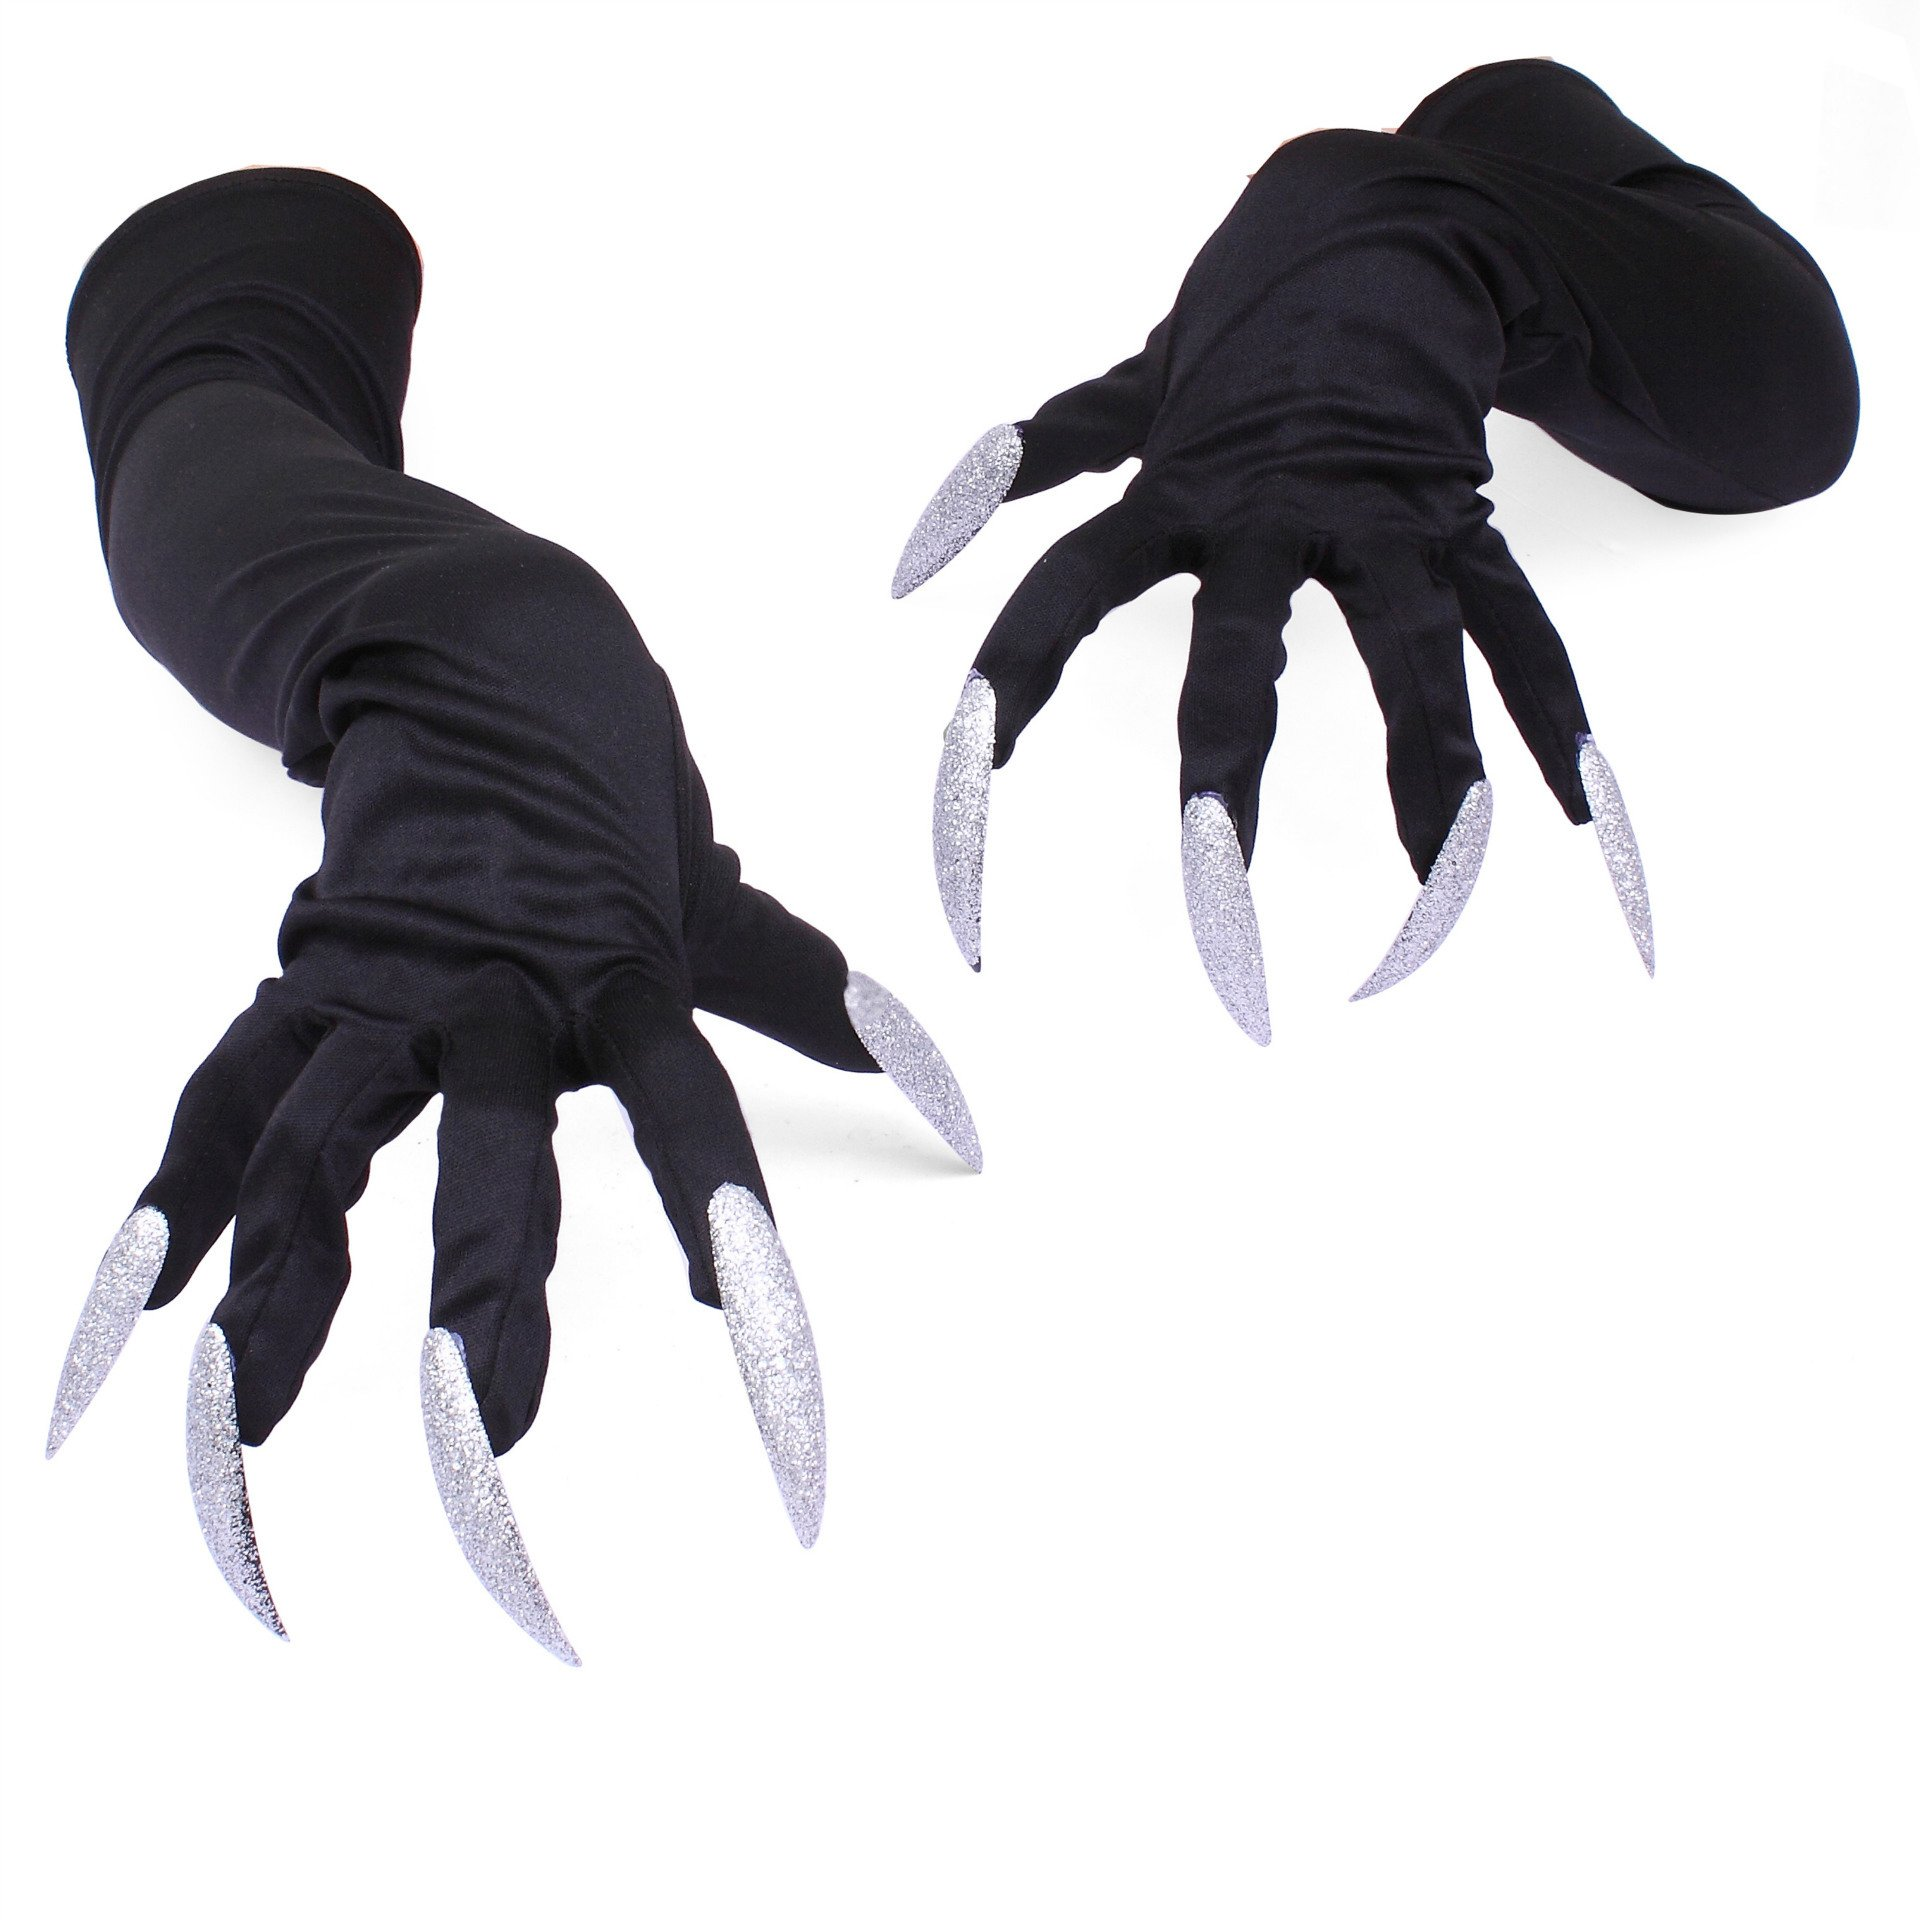 Autumn Water Long fingernail Gloves Halloween hollowen Cosplay Props Hand Sleeve Claws Performing Sleeve Cuff